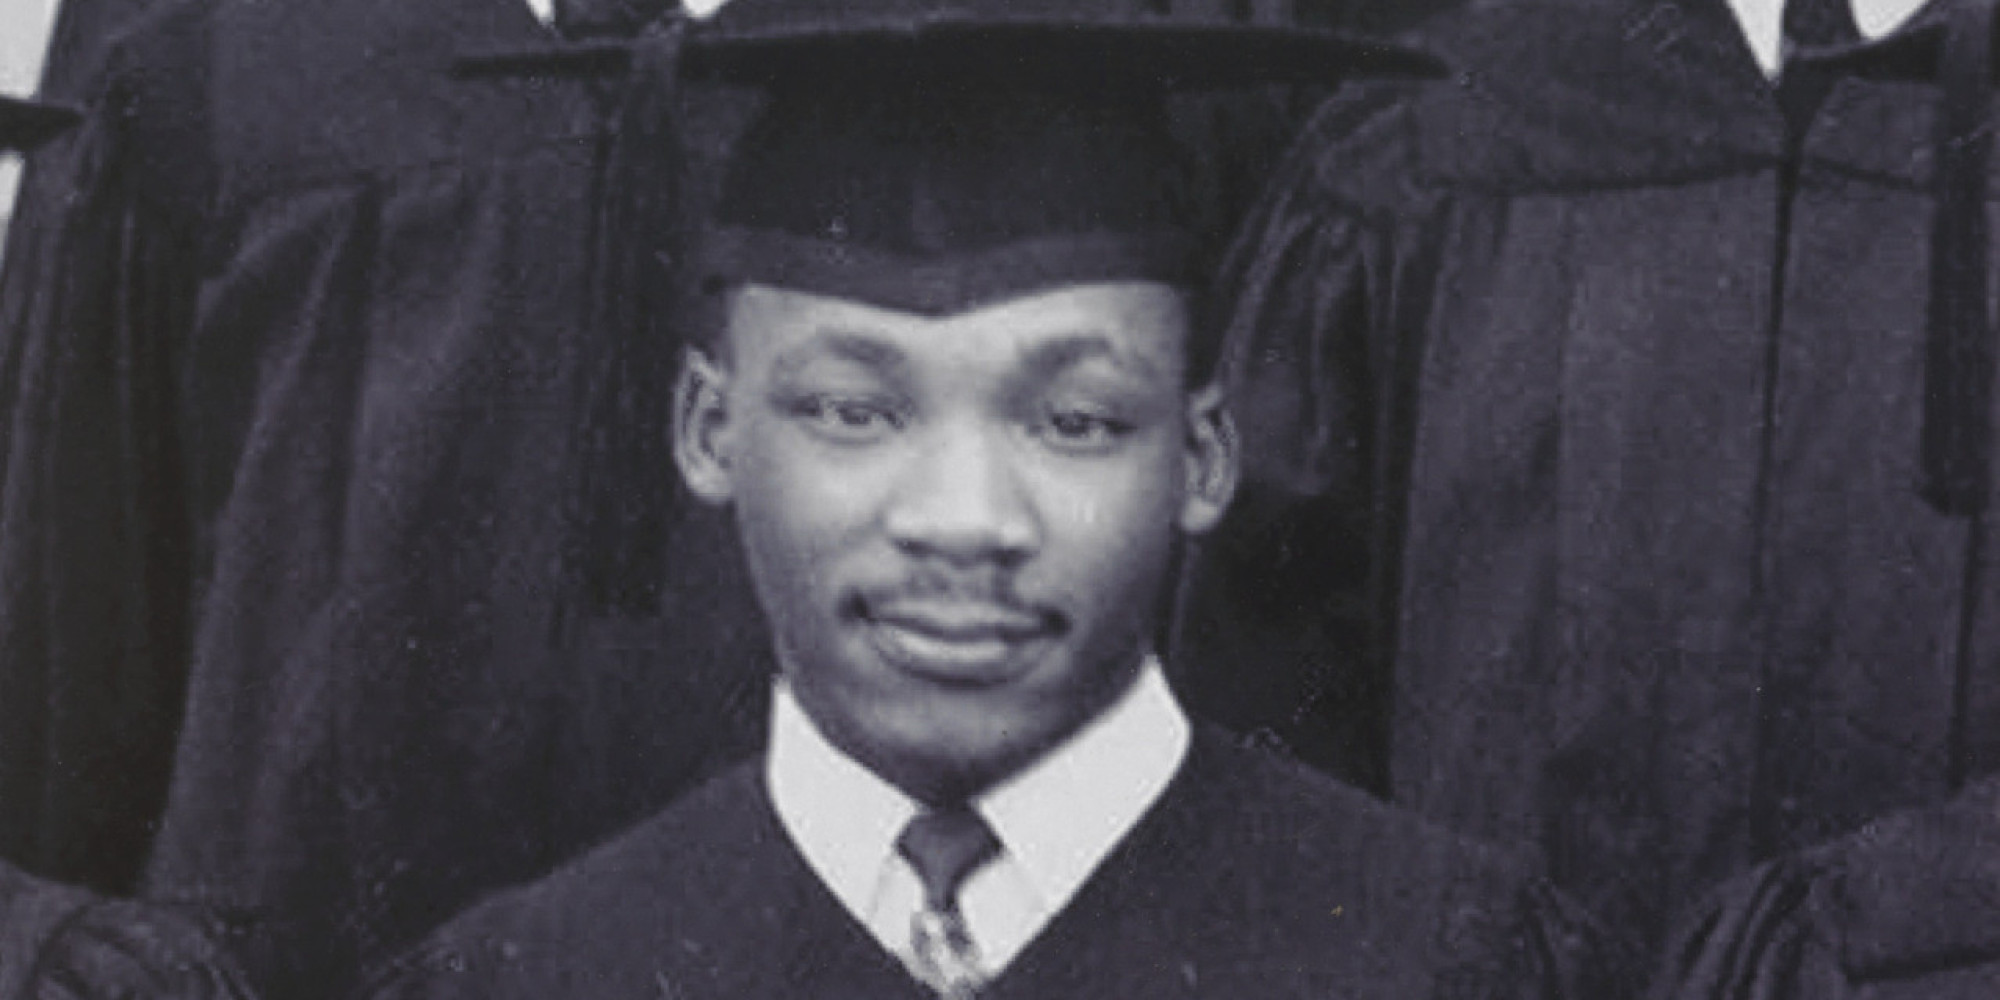 College Photos Of Martin Luther King Jr. Show The Icon's Life As A ...